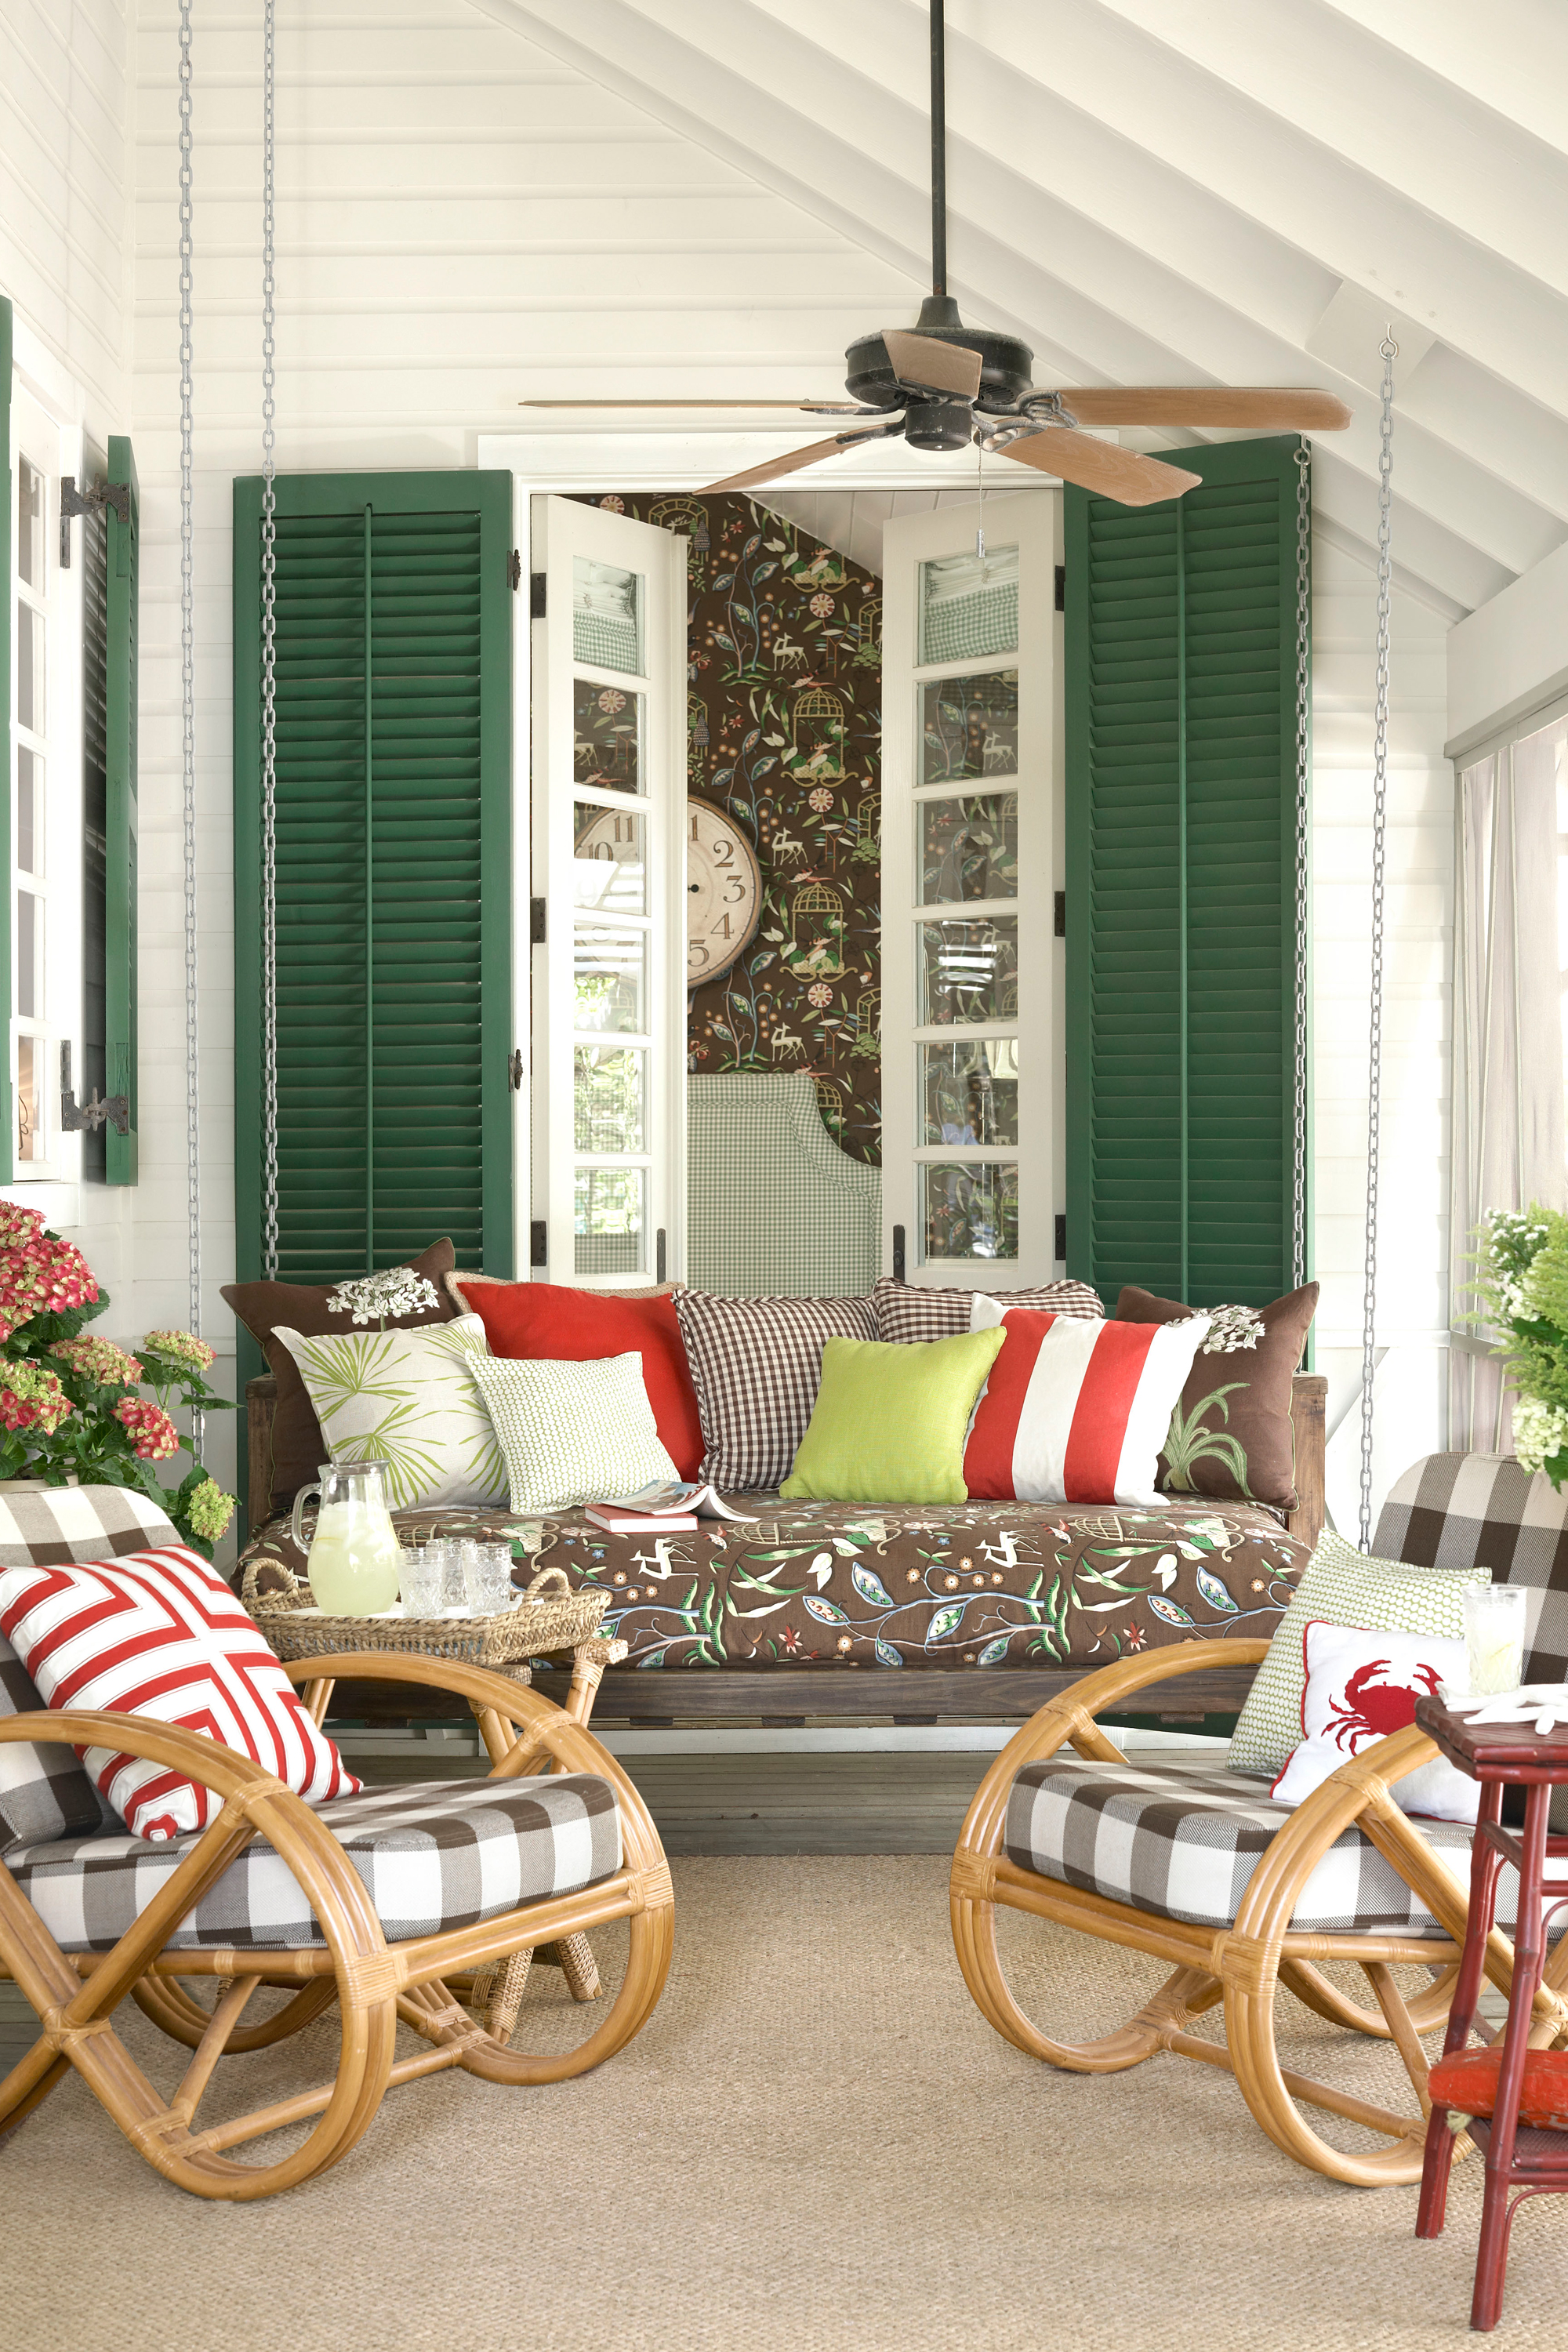 home porch designs. 65  Best Patio Designs for 2017 Ideas Front Porch and Decorating